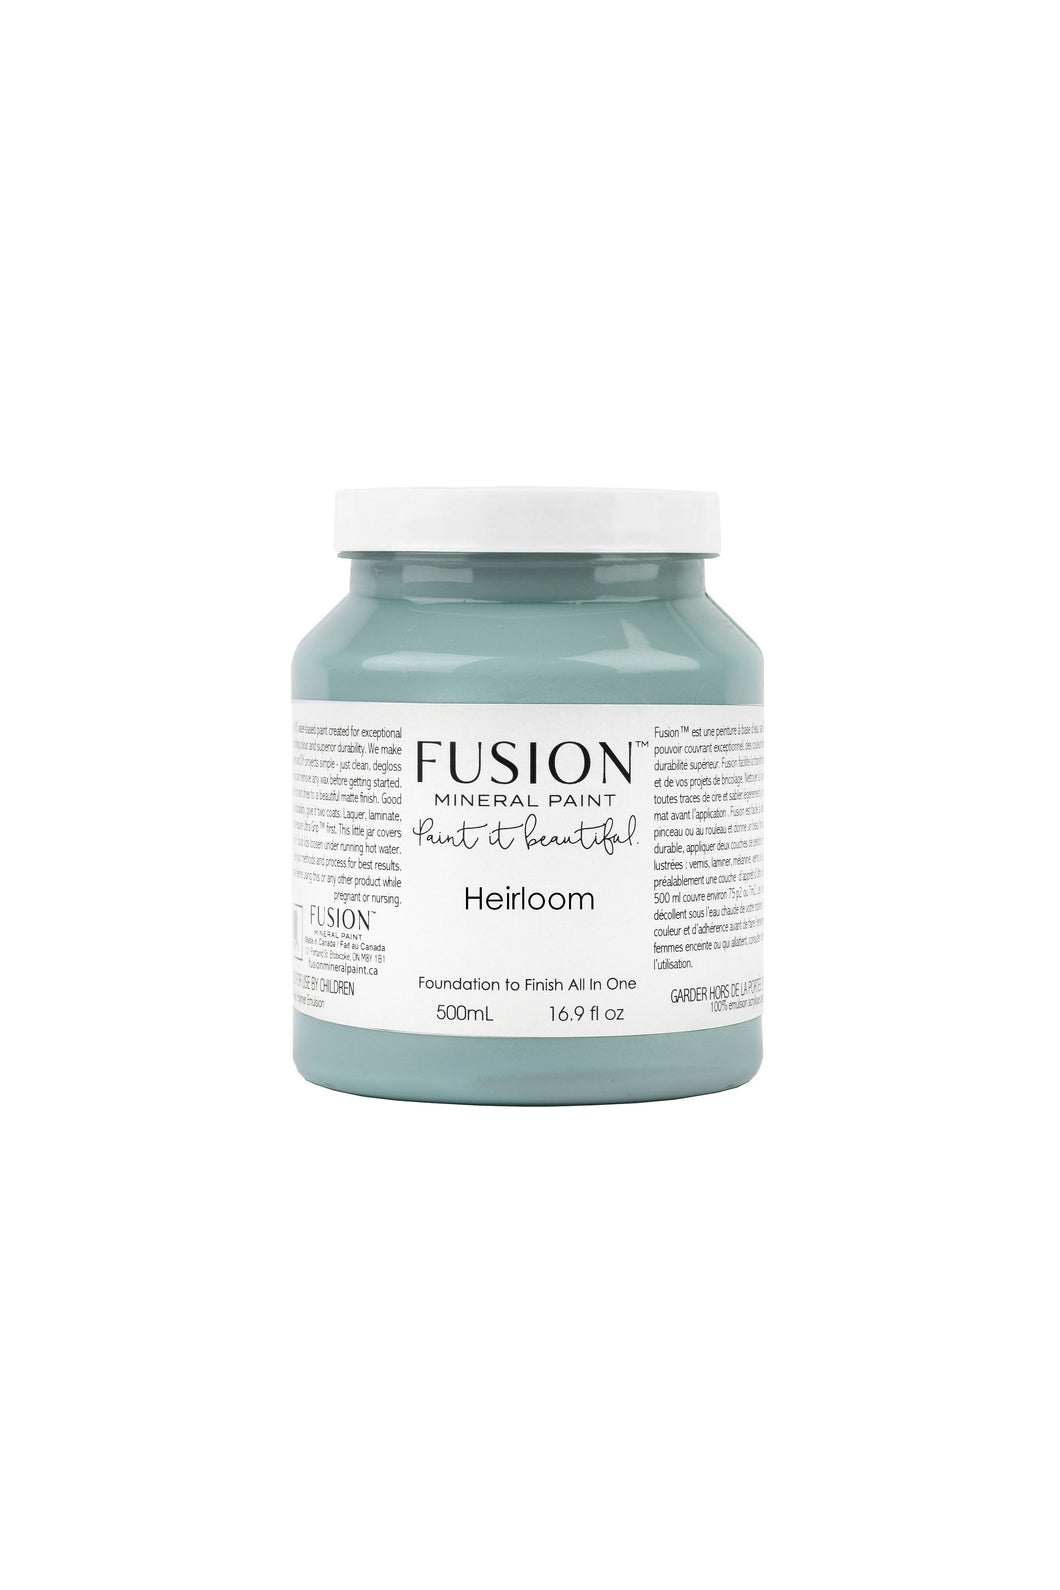 Fusion mineral paint | Heirloom | 500ml | Colour Me KT